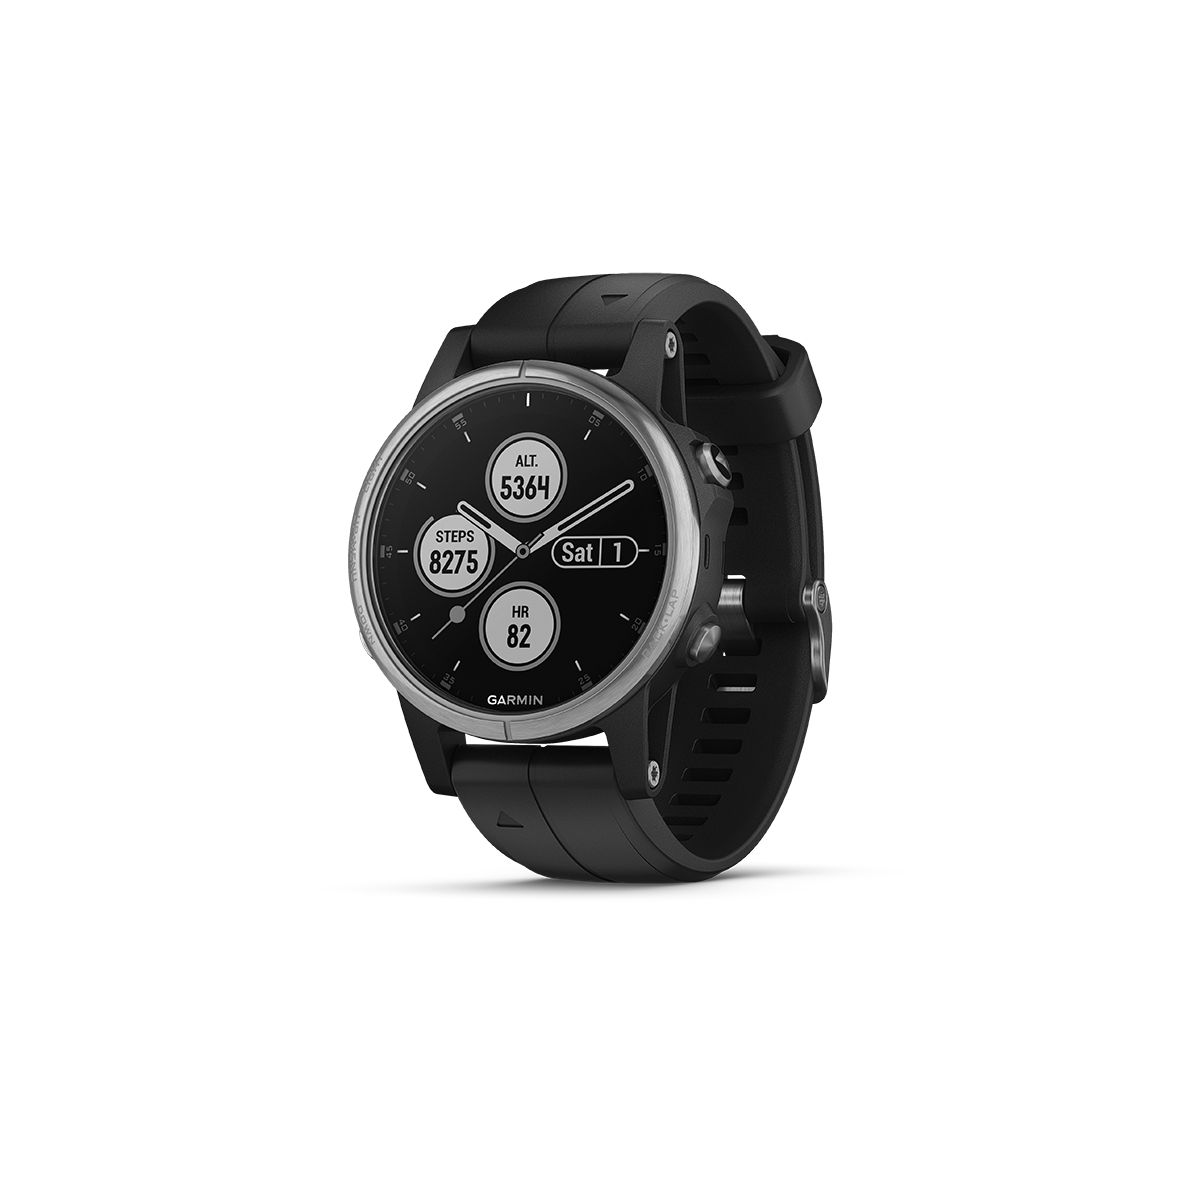 Garmin Fenix 5S Plus GPS multi-sport watch